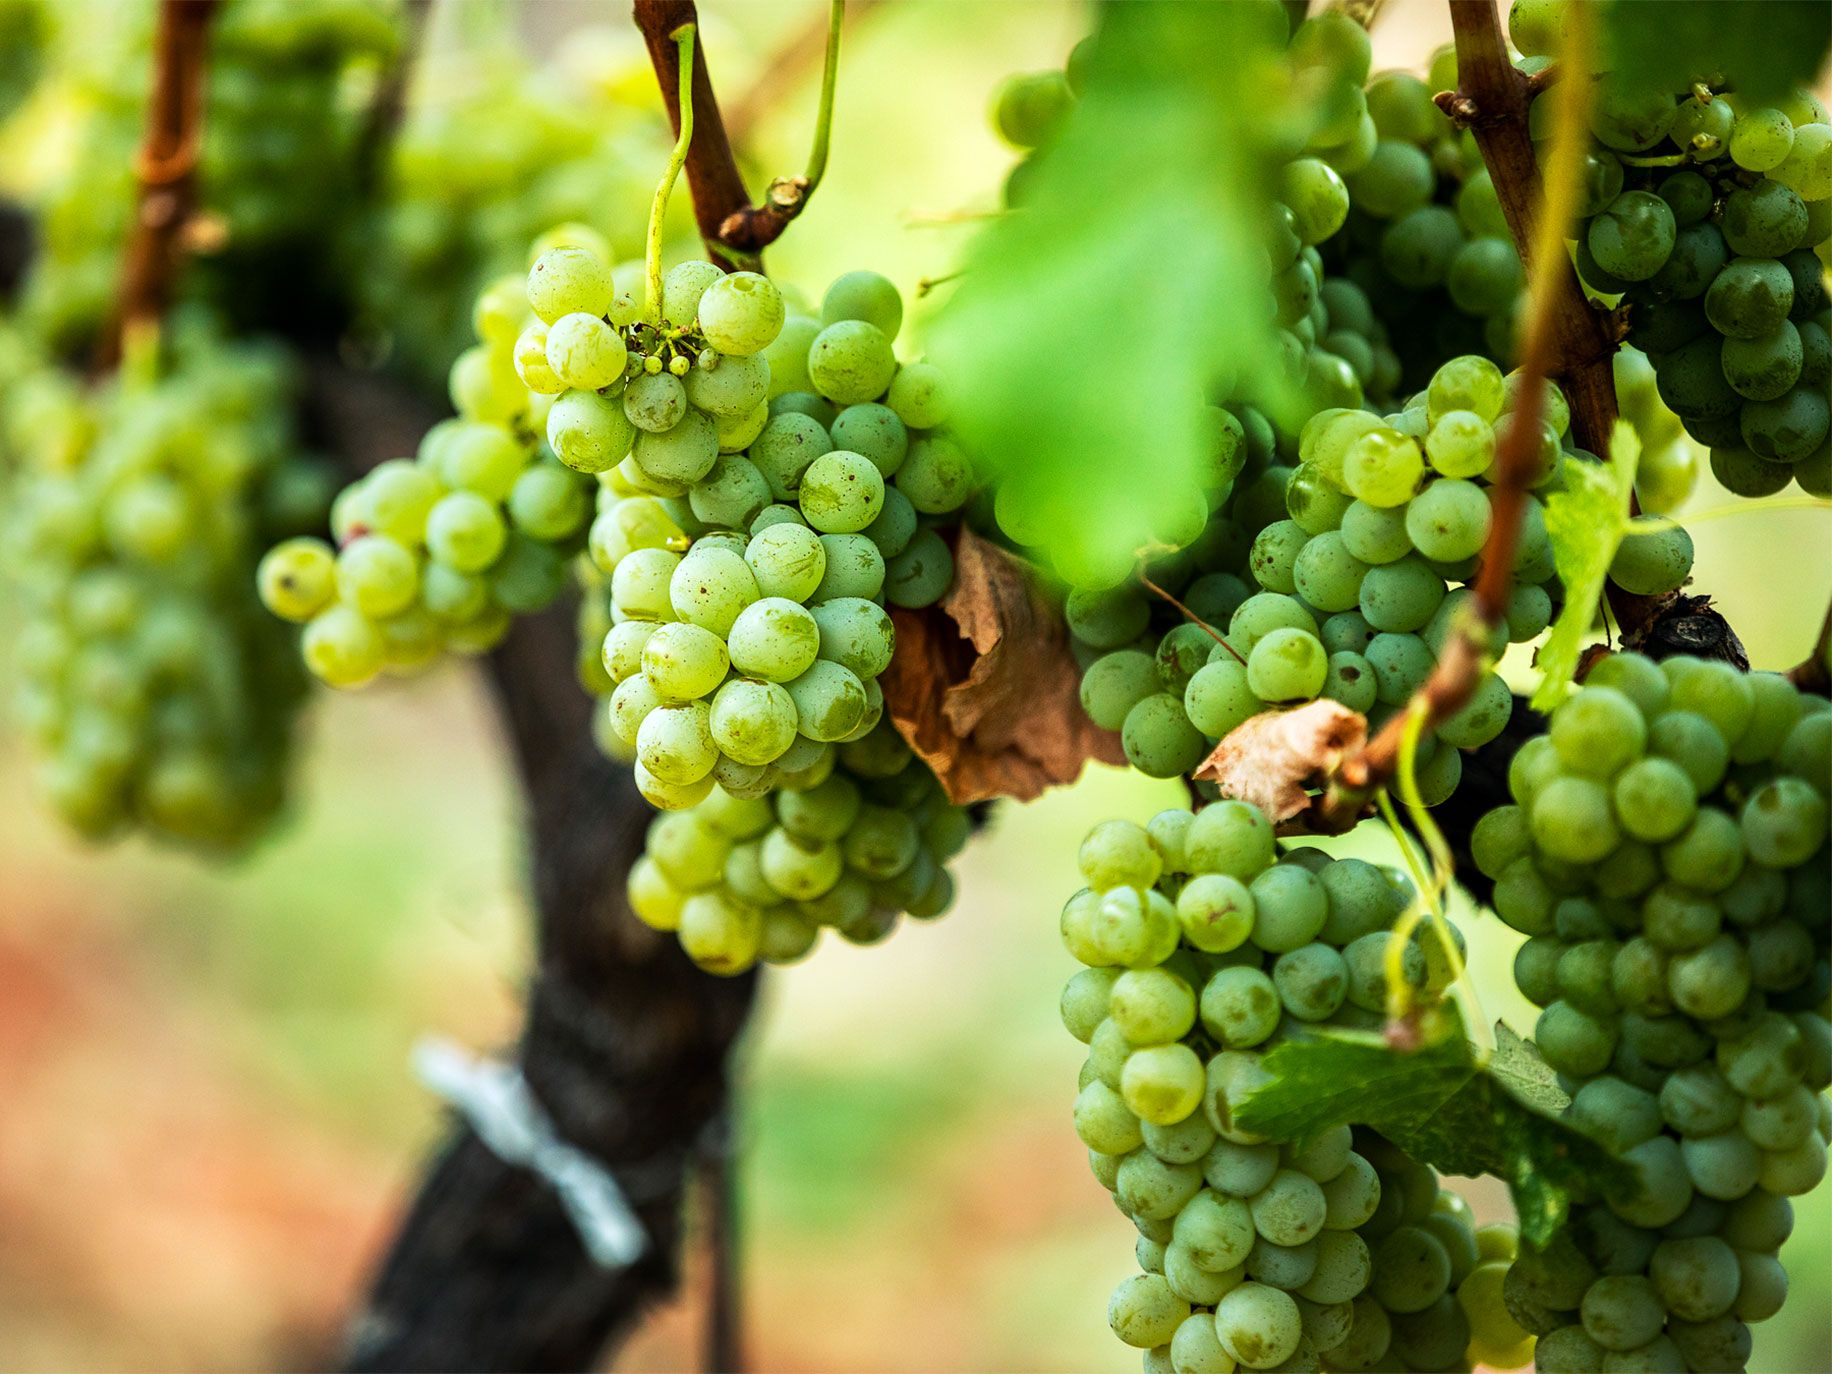 Bunches of white grapes, used in making sauvignon blanc, on the vine at Francis Ford Coppola's Inglenook winery in Napa County.